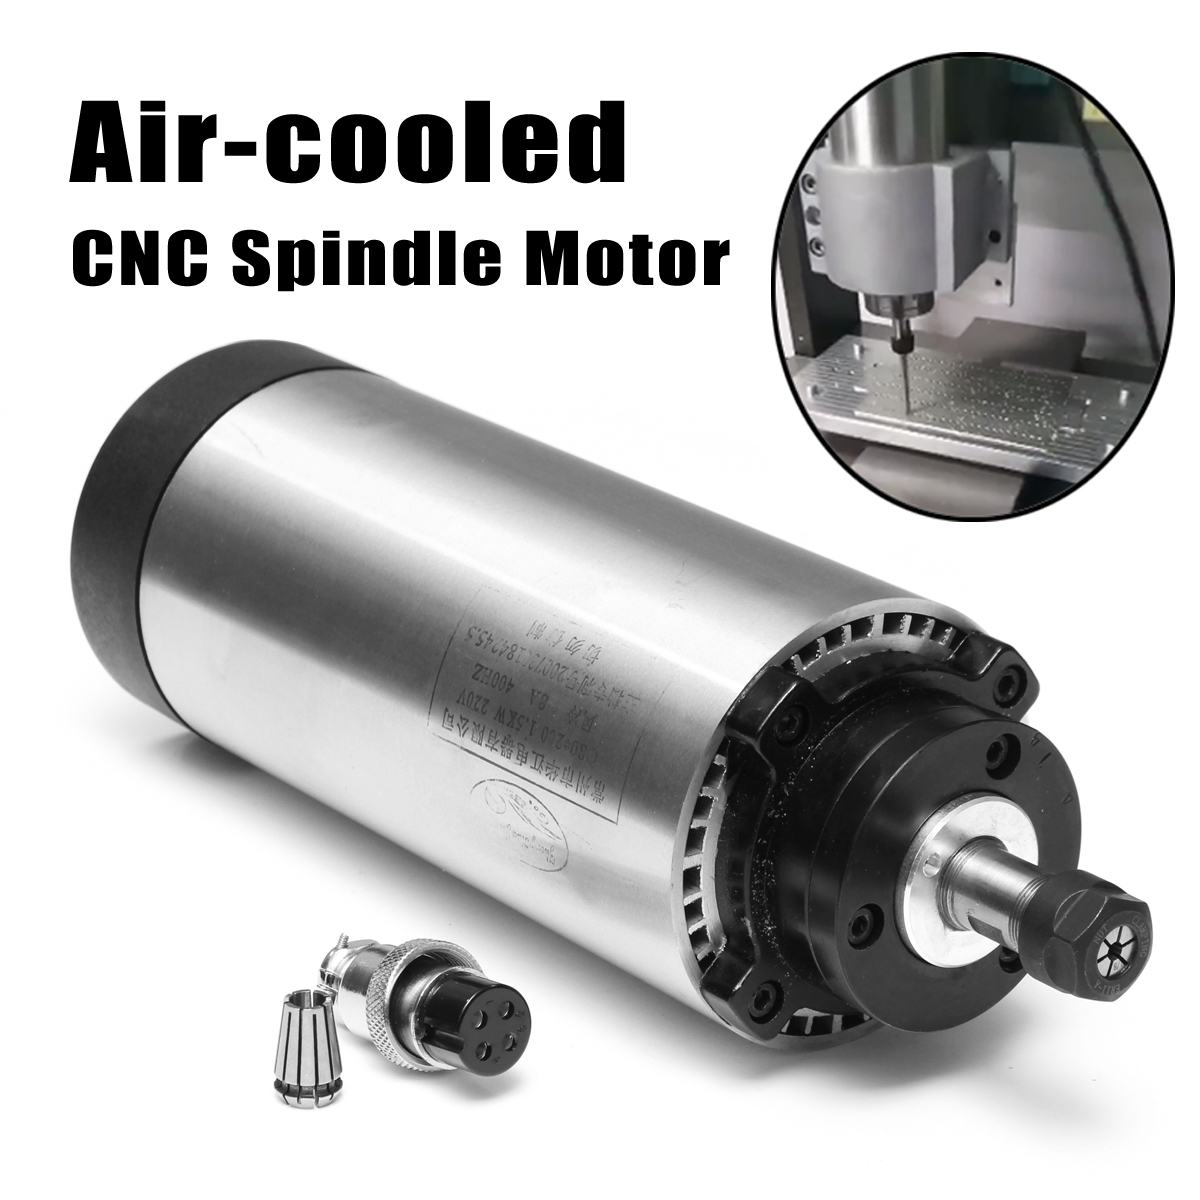 Air Cooled CNC Spindle Motor 220V AC 1.5kw ER11 24000rpm 400Hz 4 bearings CNC Milling Machine Tool Spindle huajiang brand new arrive 1 5kw spindle motor 220v air cooled motor 400hz hot selling cnc spindle motor machine tool spindle